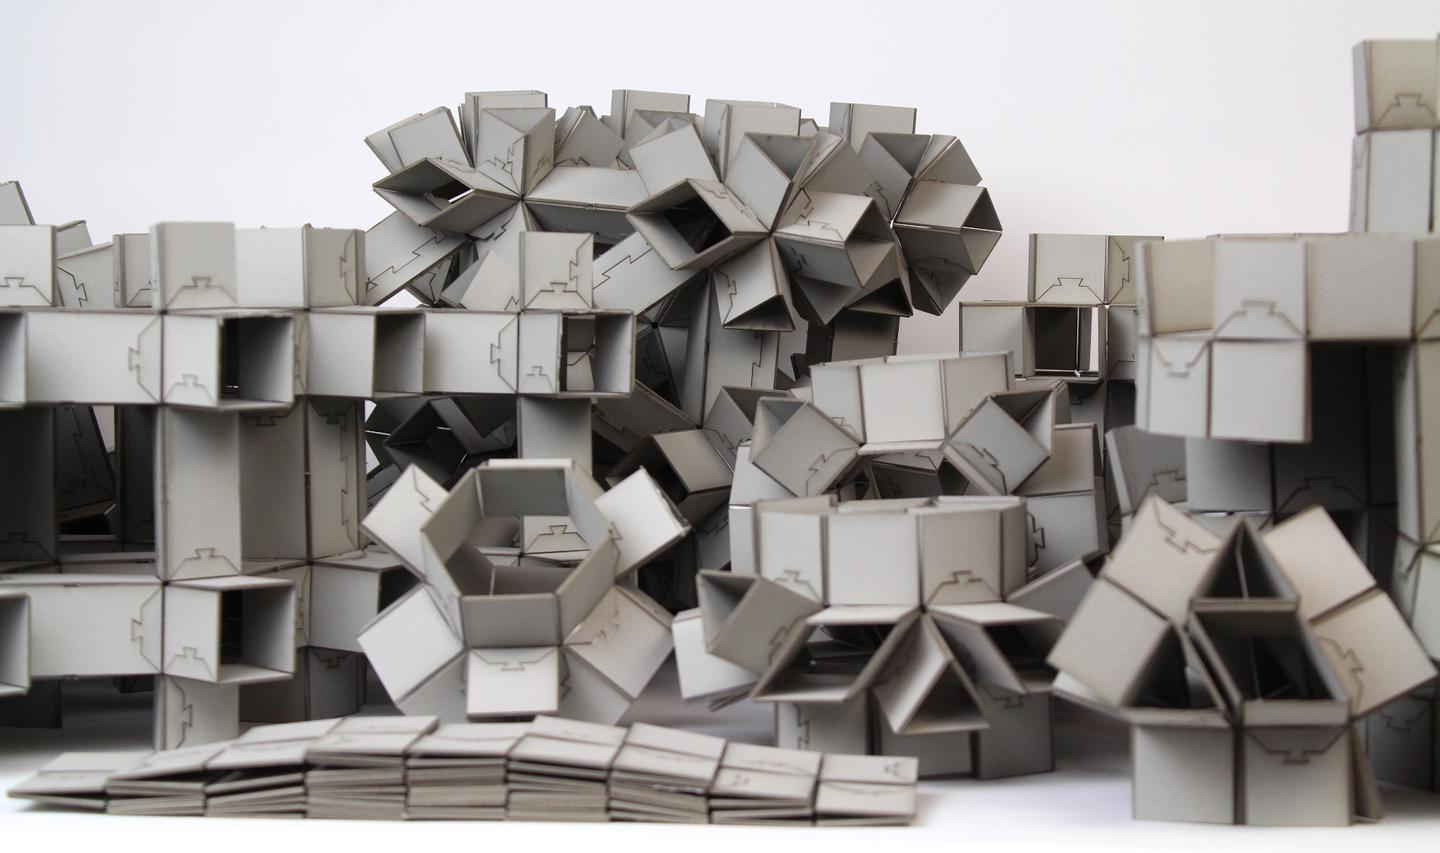 The new toolkit can evaluate millions of shapes